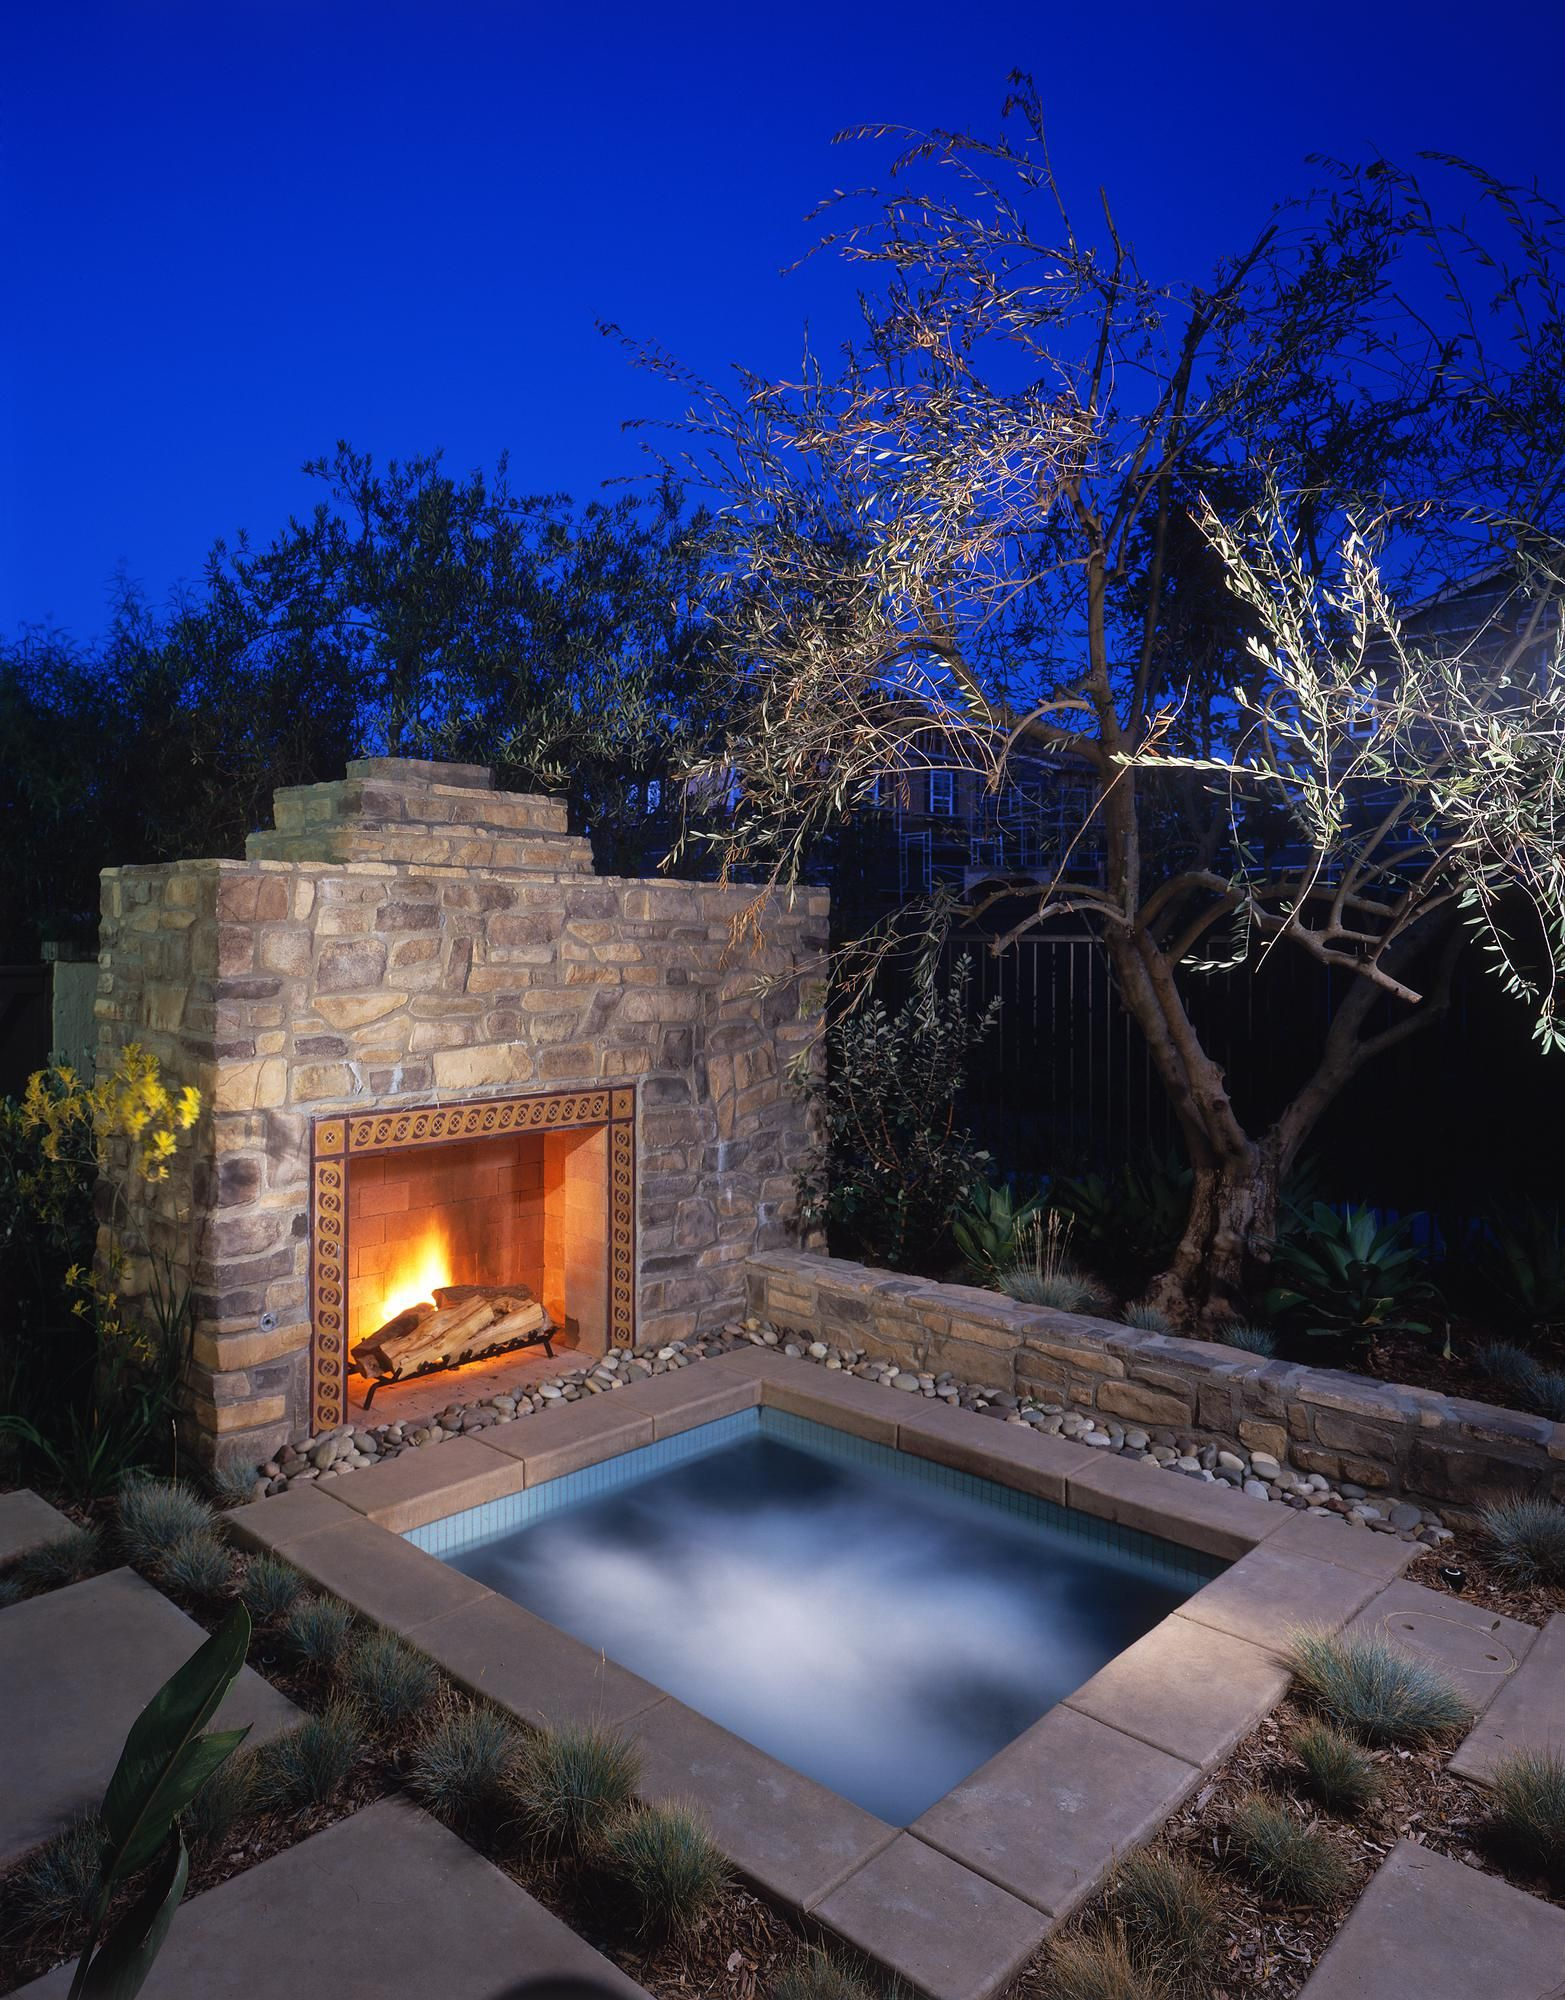 A Stone Fireplace and Hot Tub a perfect addition to any backyard